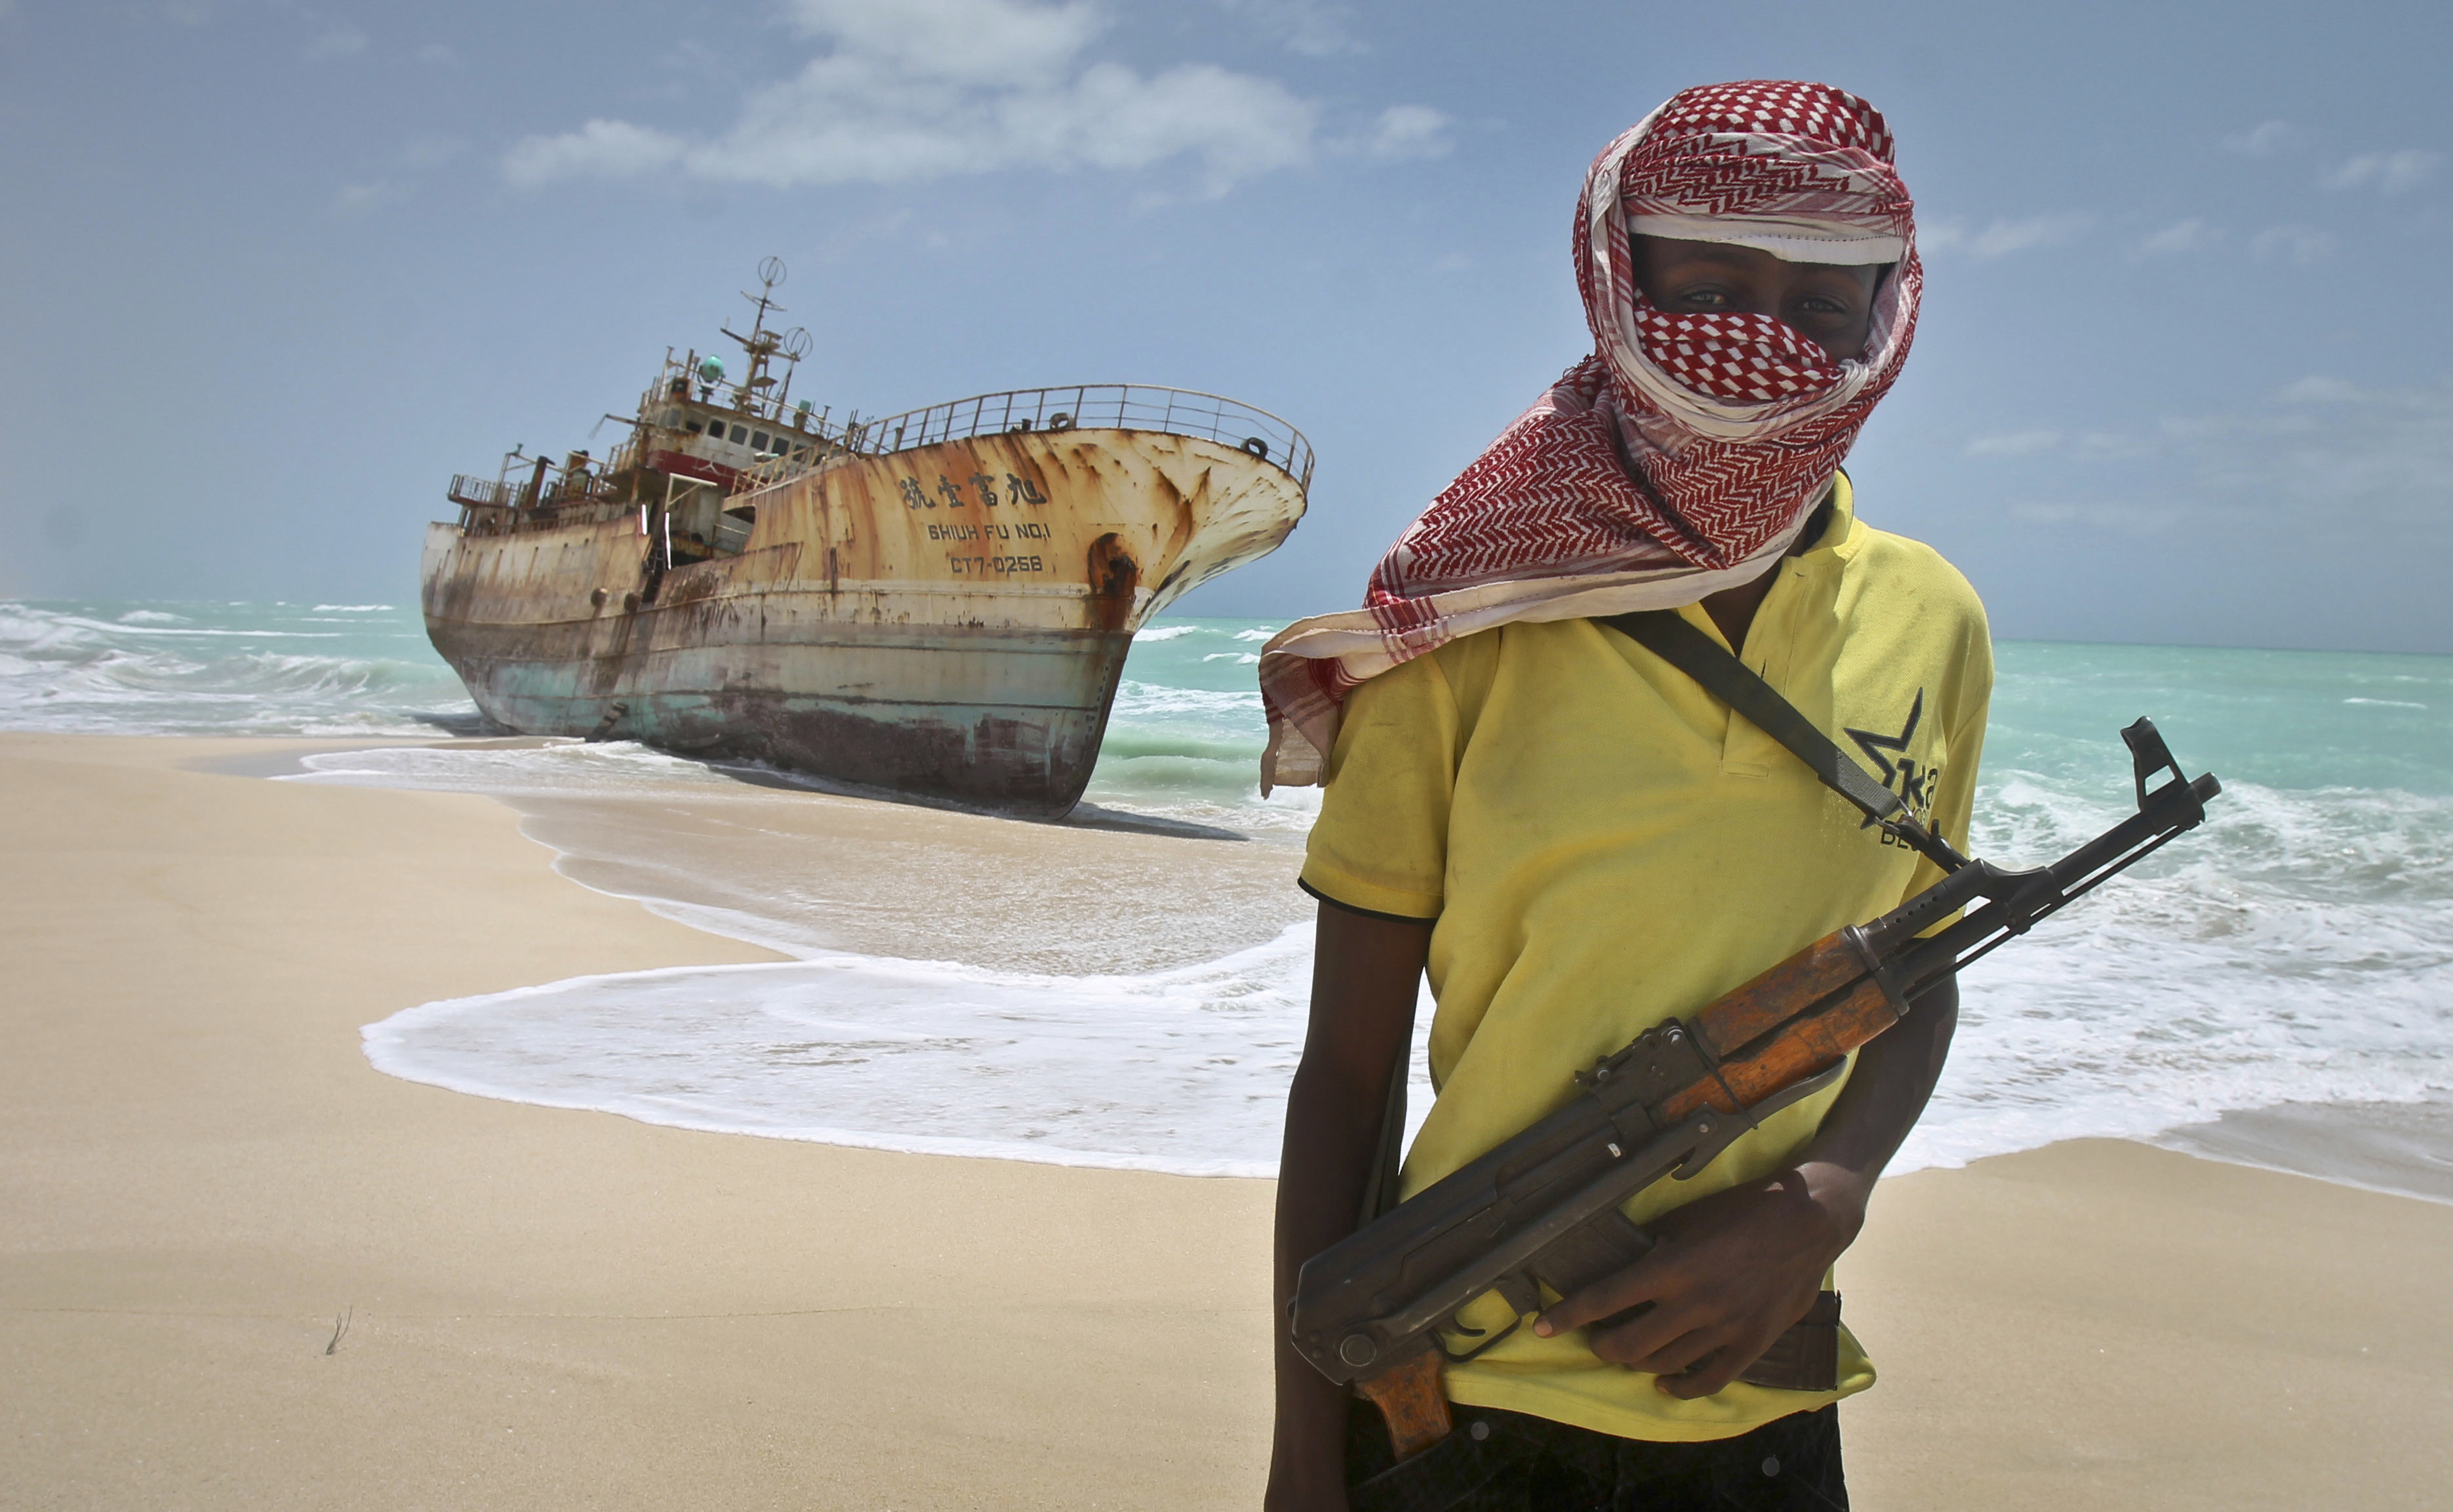 Masked and armed Somali pirate Hassan stands near a Taiwanese fishing vessel washed ashore after the pirates were paid a ransom and the crew were released in the once-bustling pirate den of Hobyo, Somalia on Sept. 23, 2012. (AP Photo/Farah Abdi Warsameh)